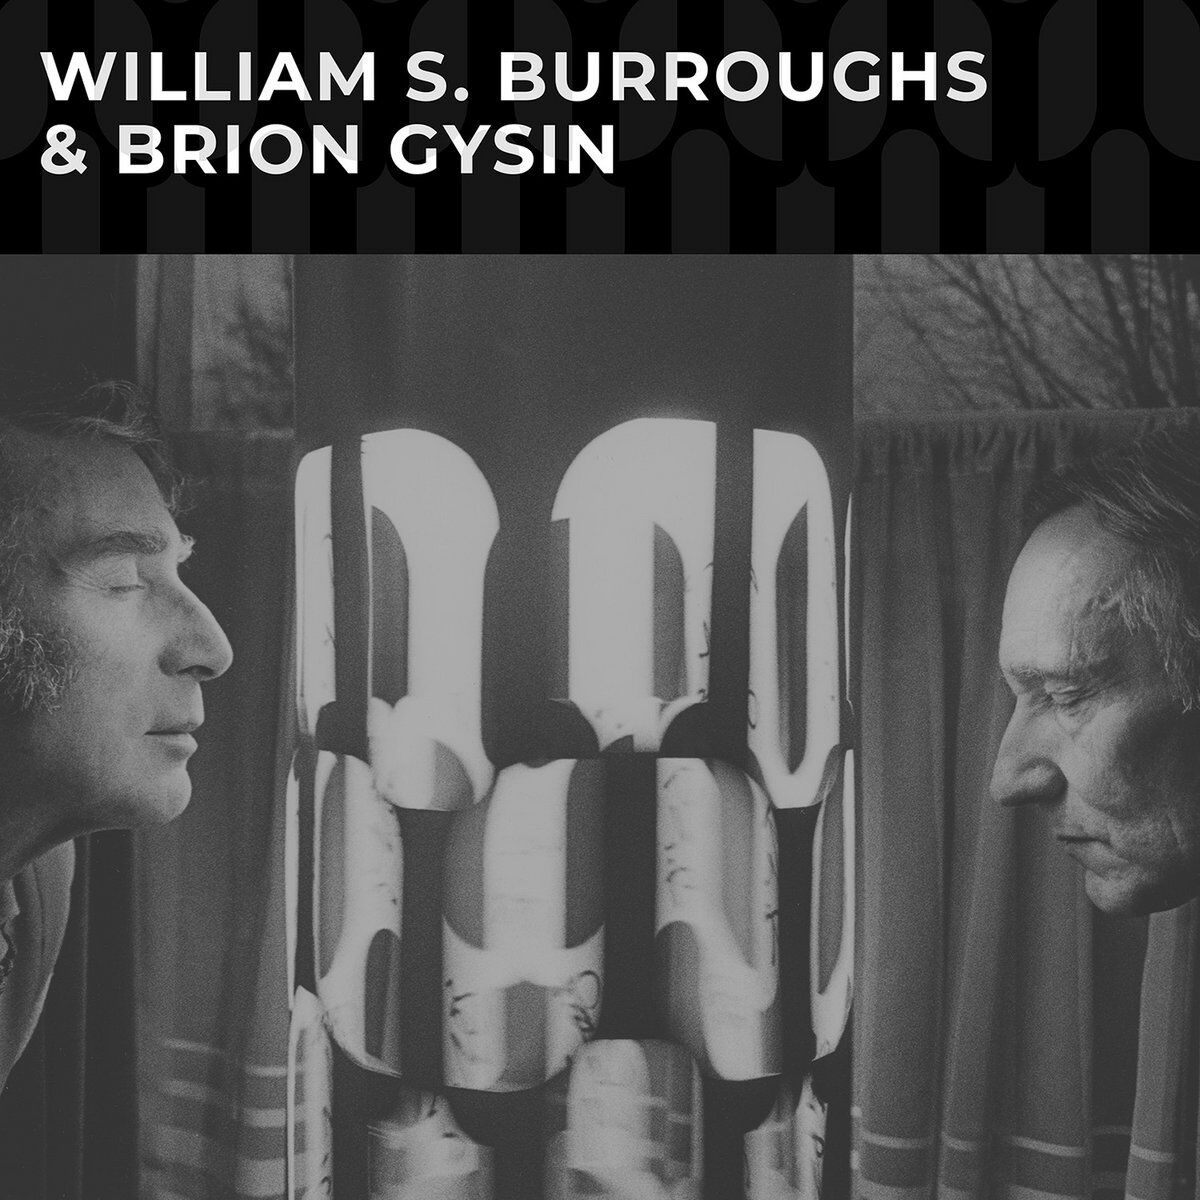 William S. Burroughs & Brion Gysin see 1982 live readings and more released on vinyl